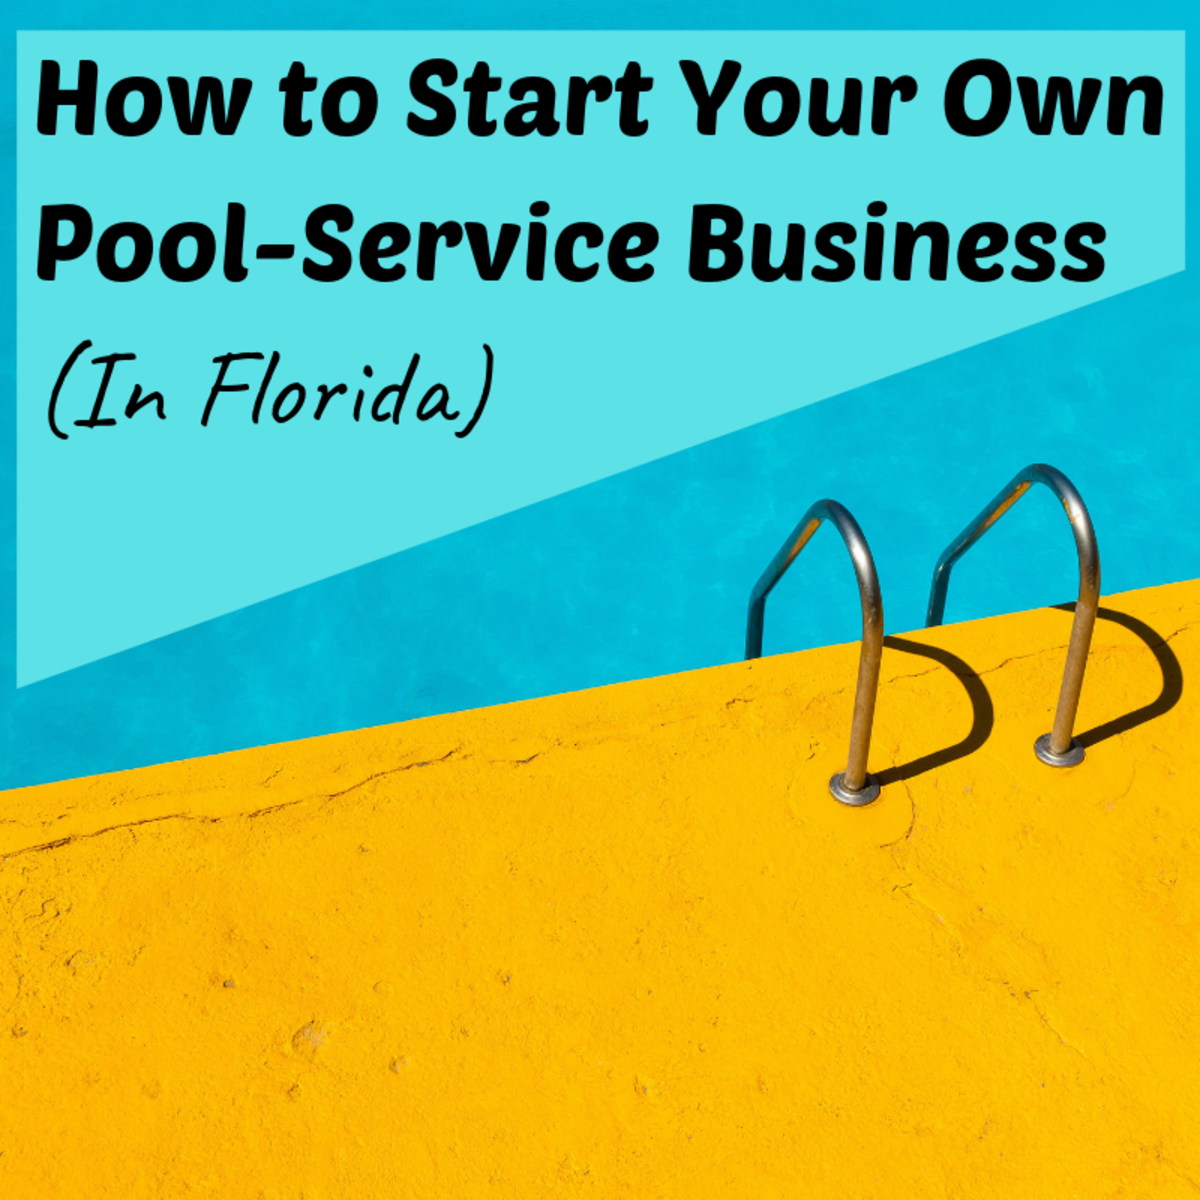 Starting your own pool-service business is a difficult undertaking, but is well-worth the effort!